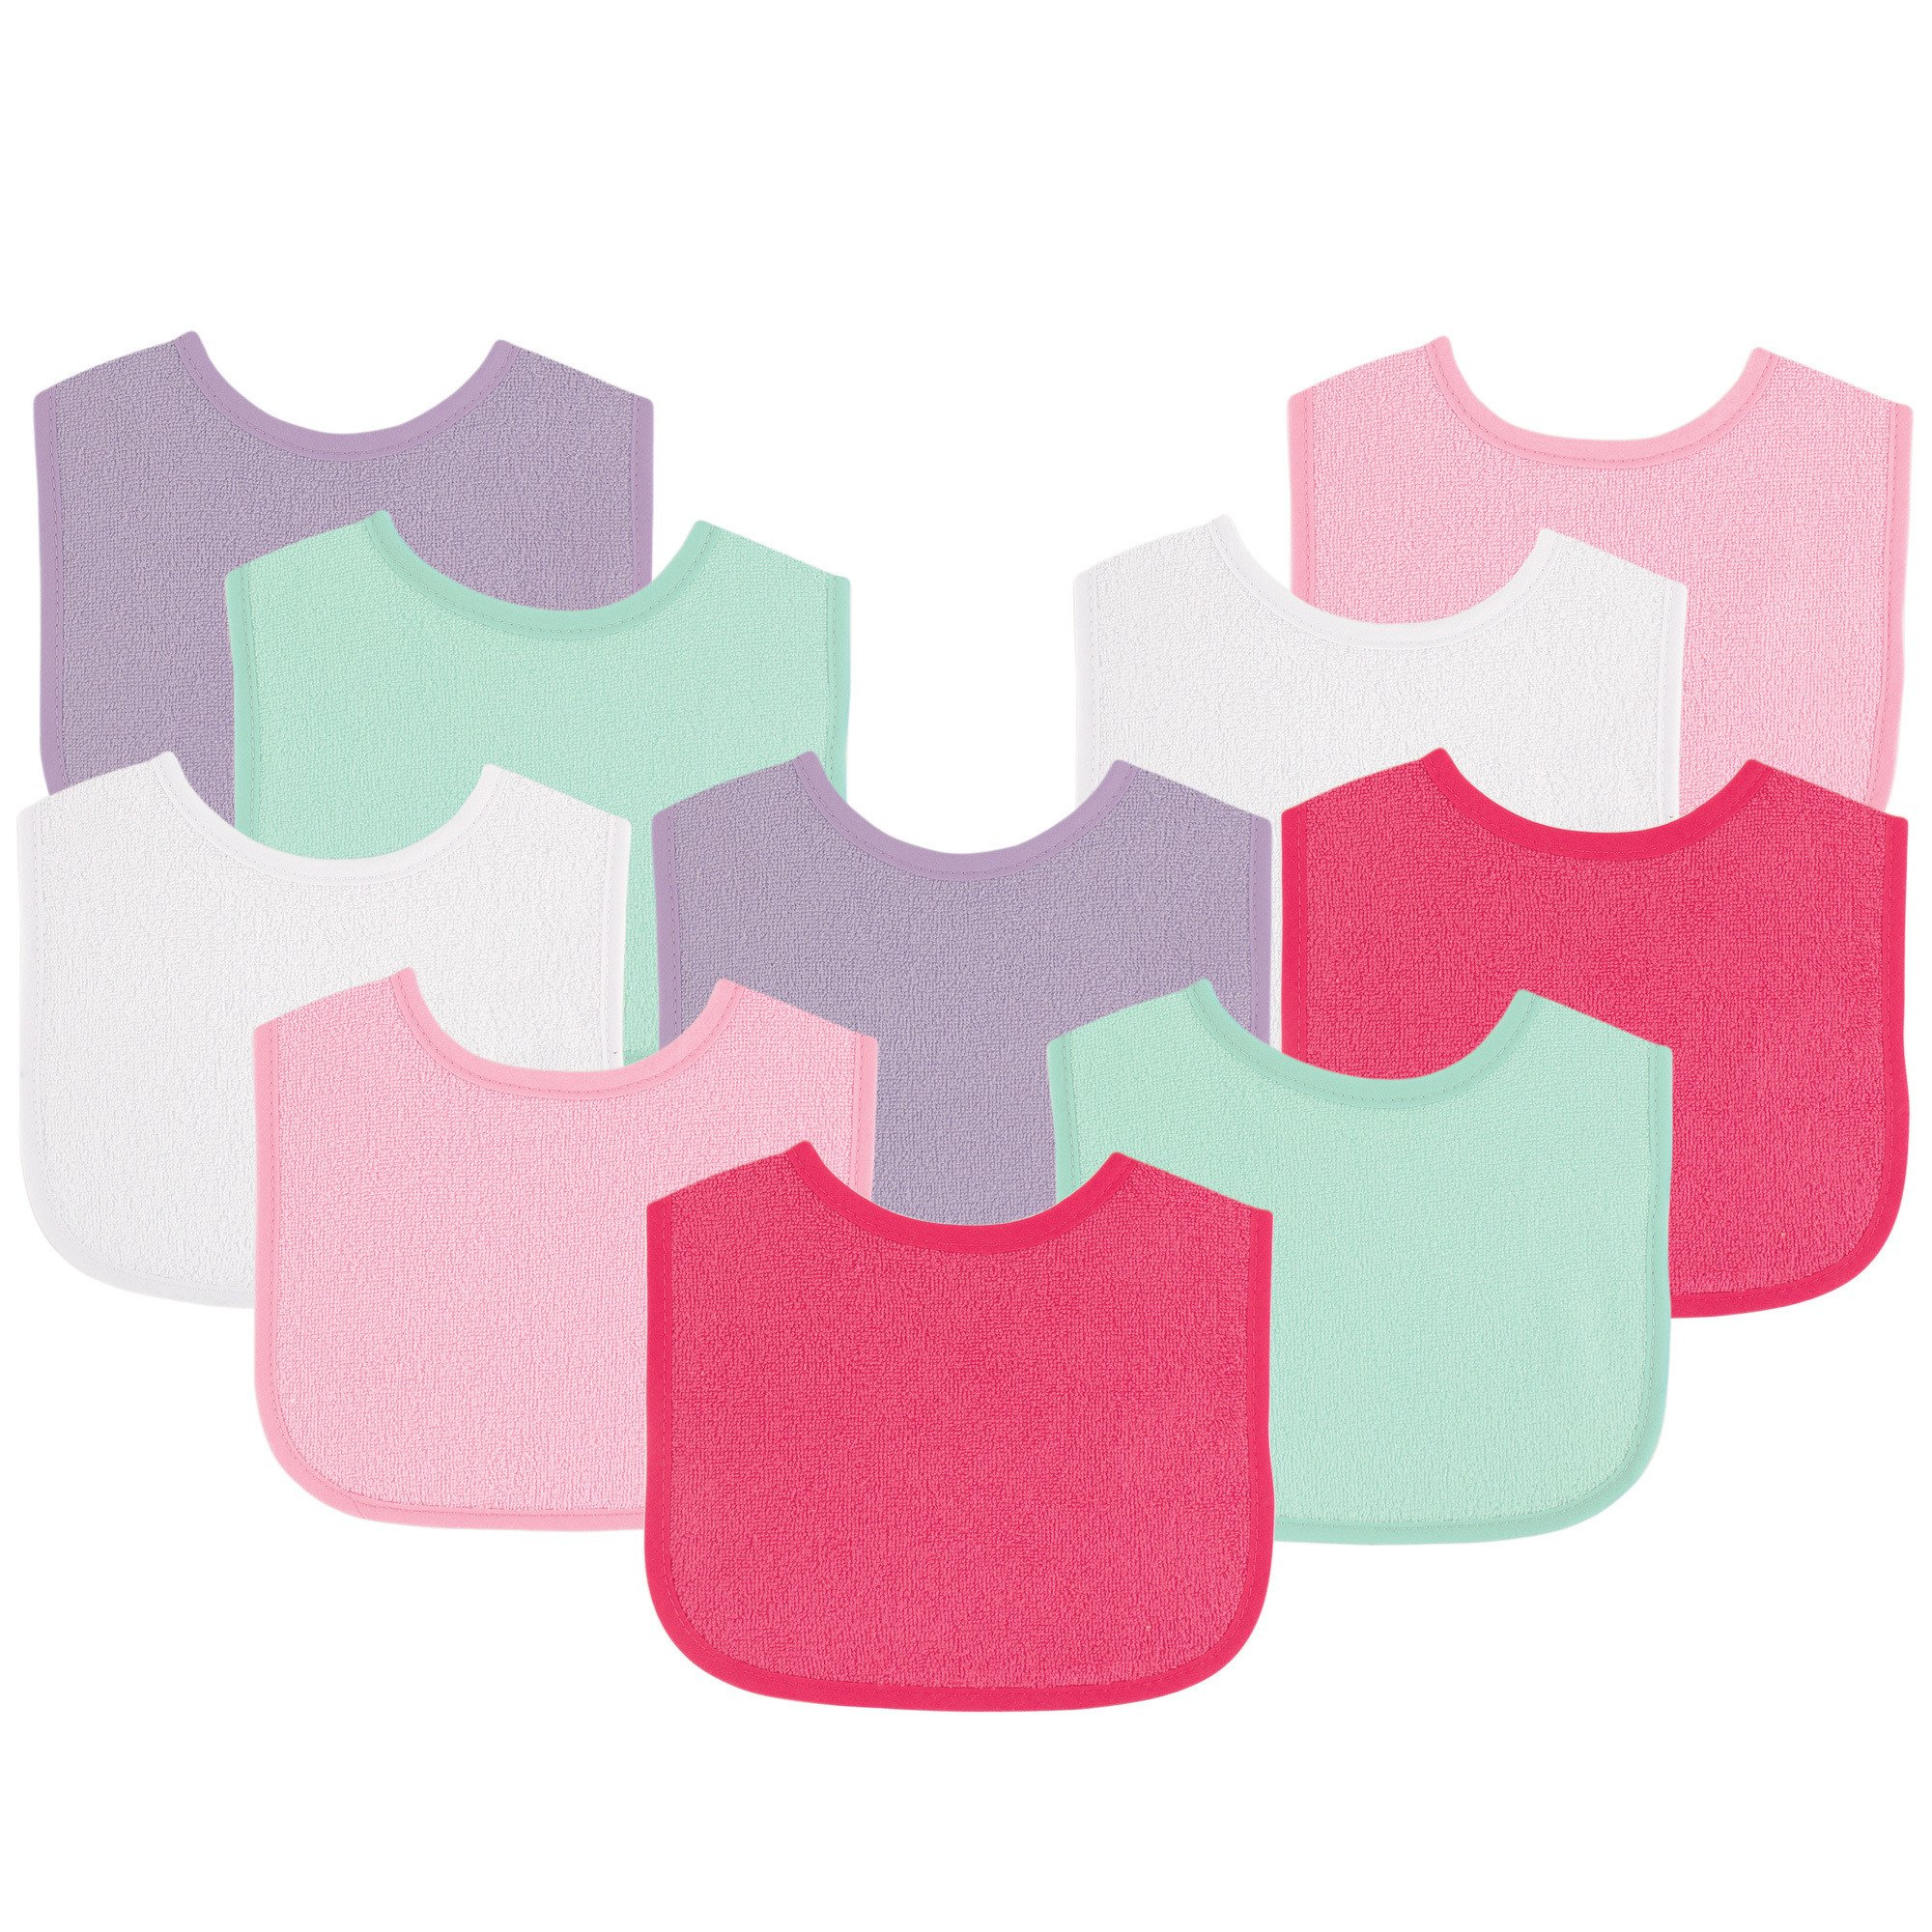 Luvable Friends Baby Bibs Value Pack, Pink/Purple, 6 x 7.5, 10 Count (Colors May Vary)